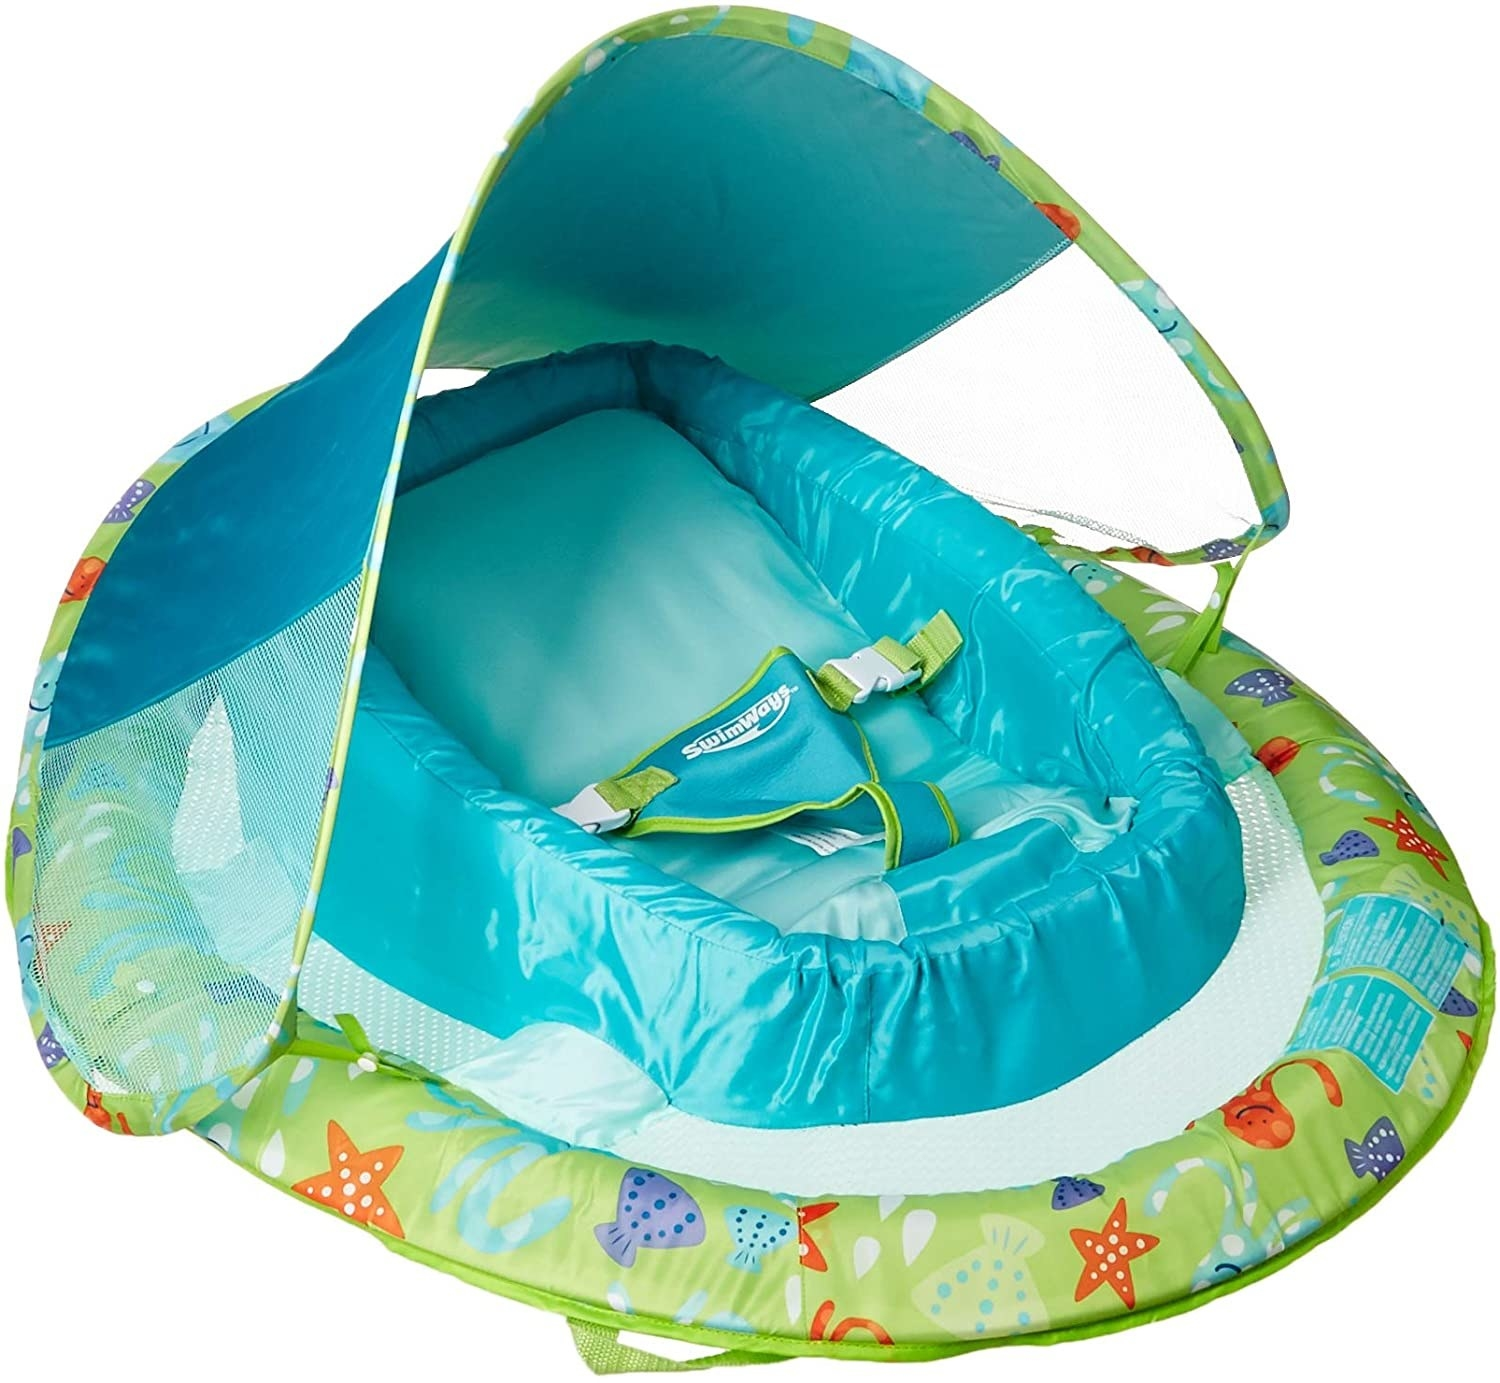 The baby float is a rounded float with a baby seat on the center and an adjustable canopy overhead